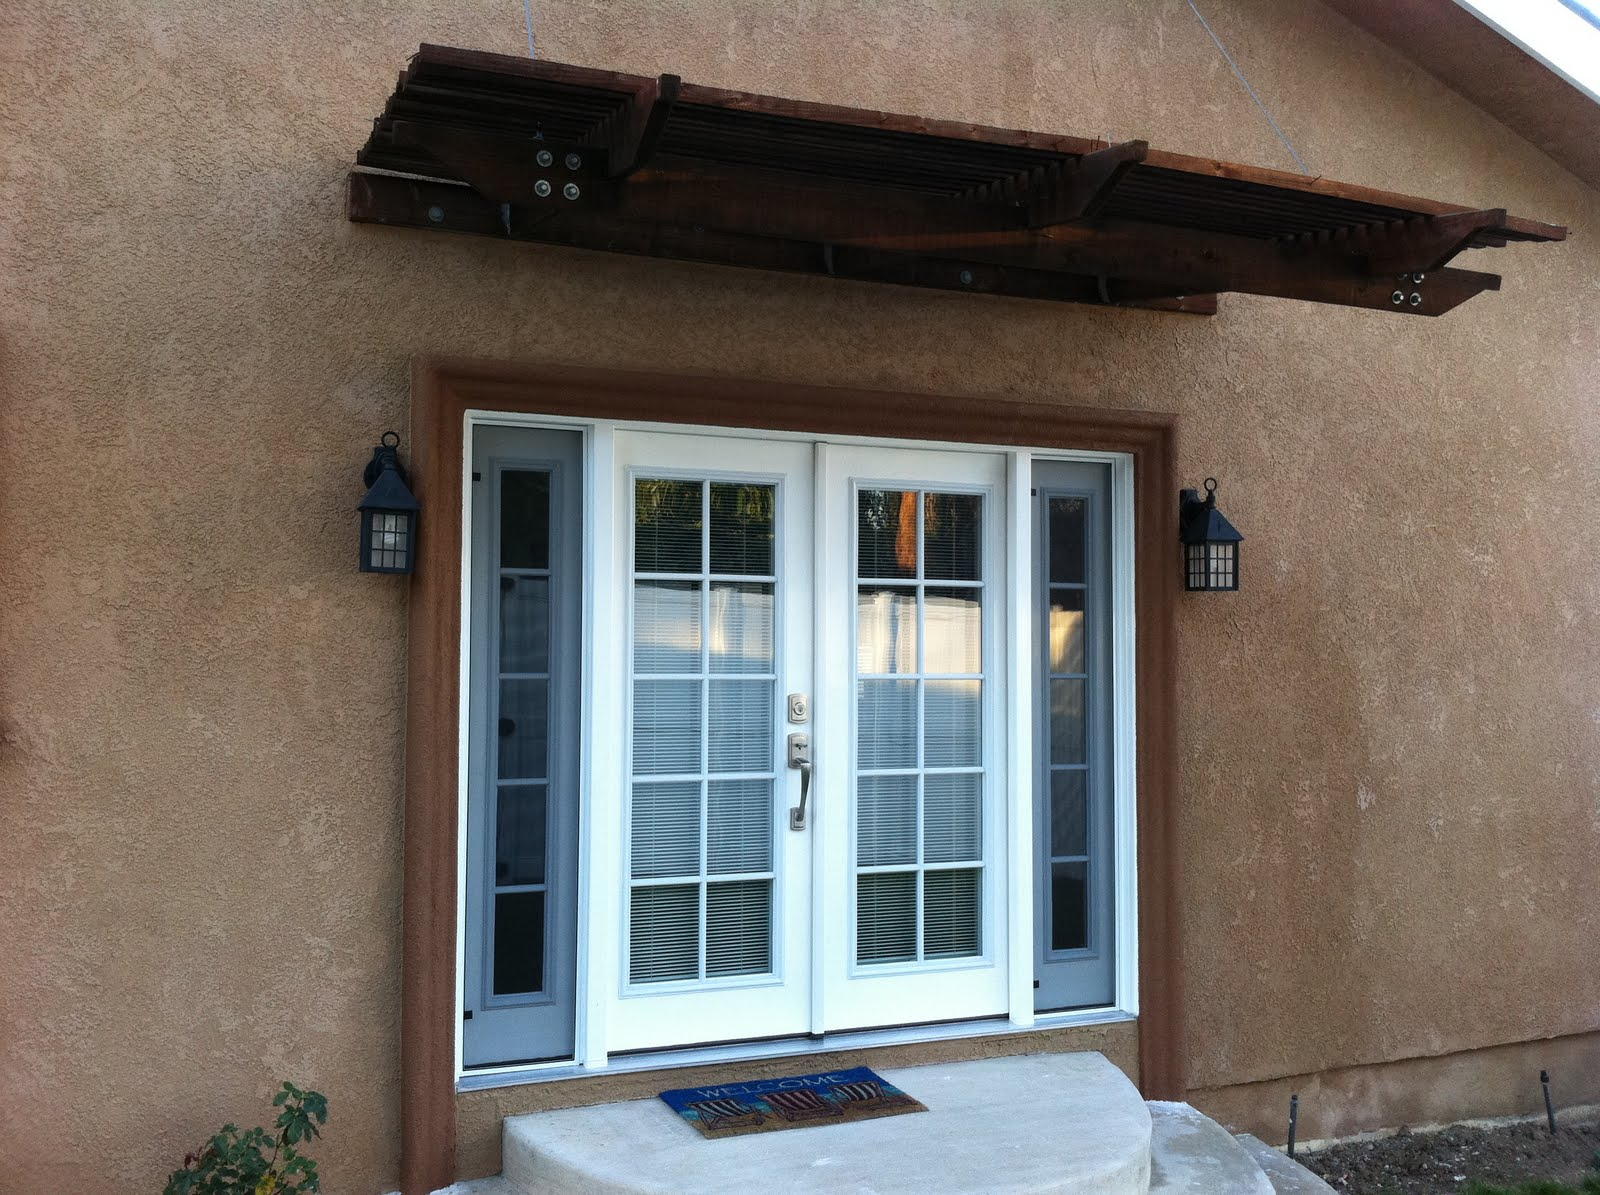 Thb construction back door replaced with double french for French doors with side windows that open